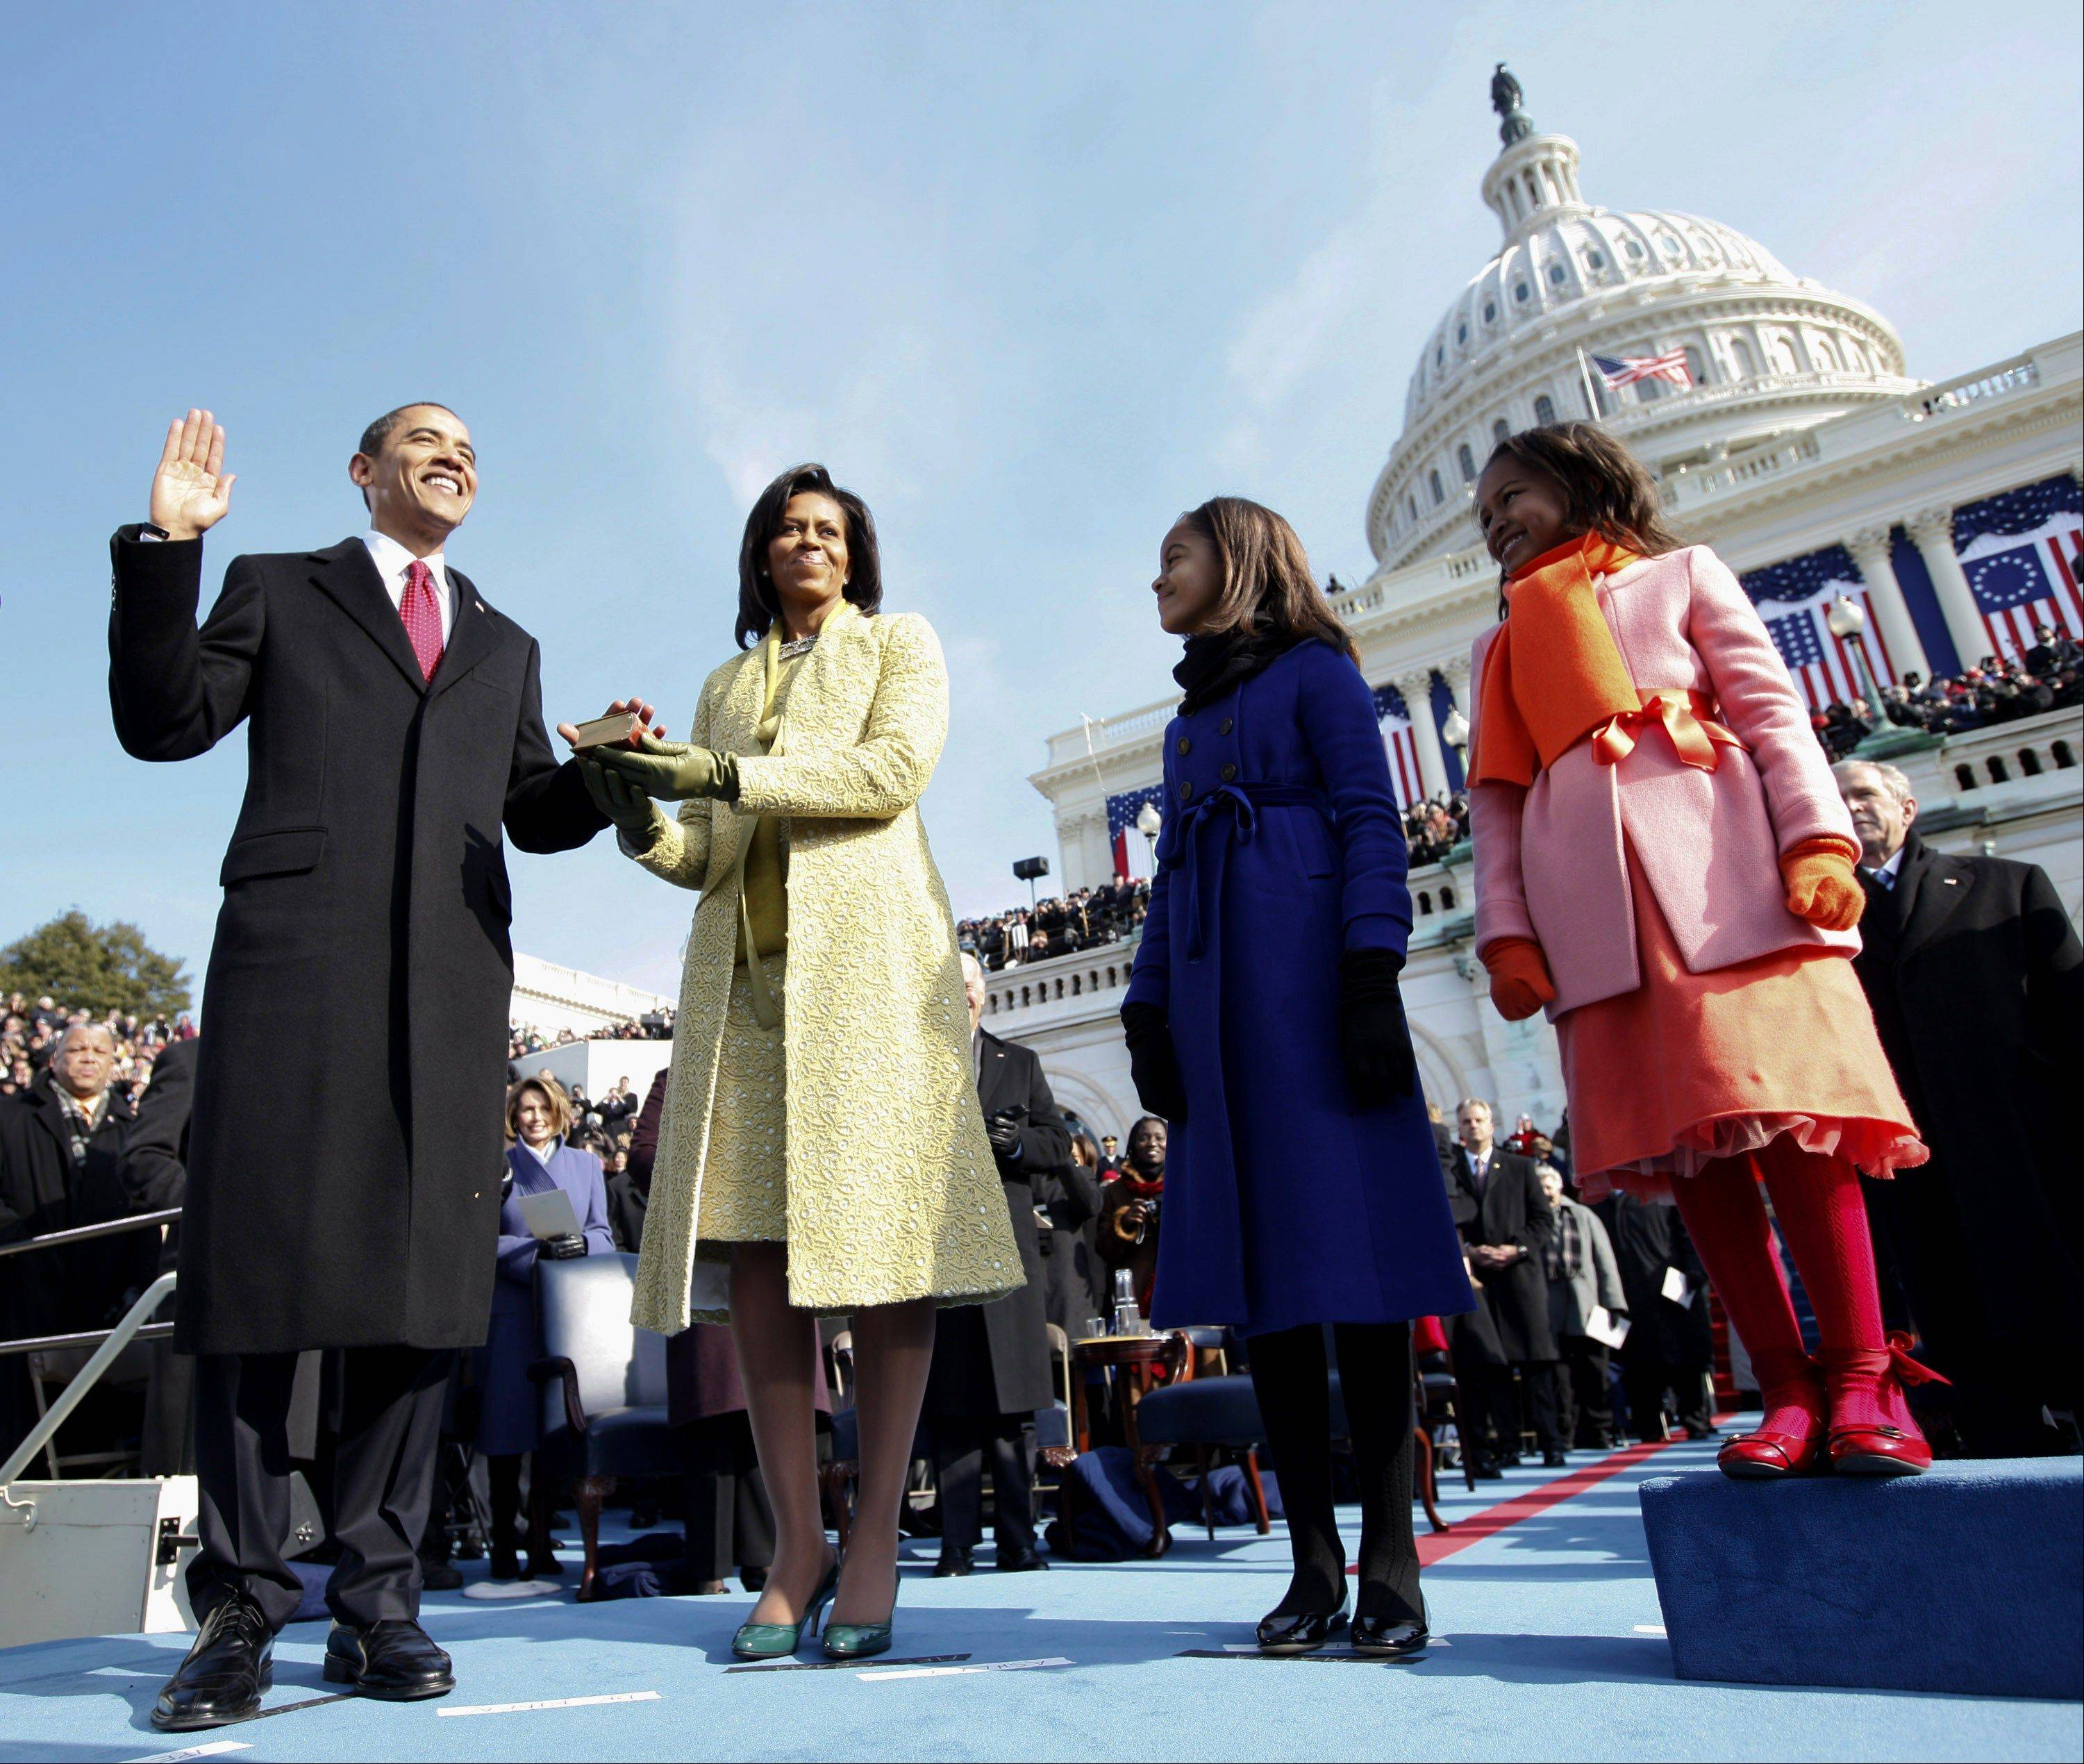 Barack Obama, left, takes the oath of office from Chief Justice John Roberts, not seen, as his wife Michelle, holds the Lincoln Bible and daughters Sasha, right and Malia, watch at the U.S. Capitol in Washington, Tuesday, Jan. 20, 2009.